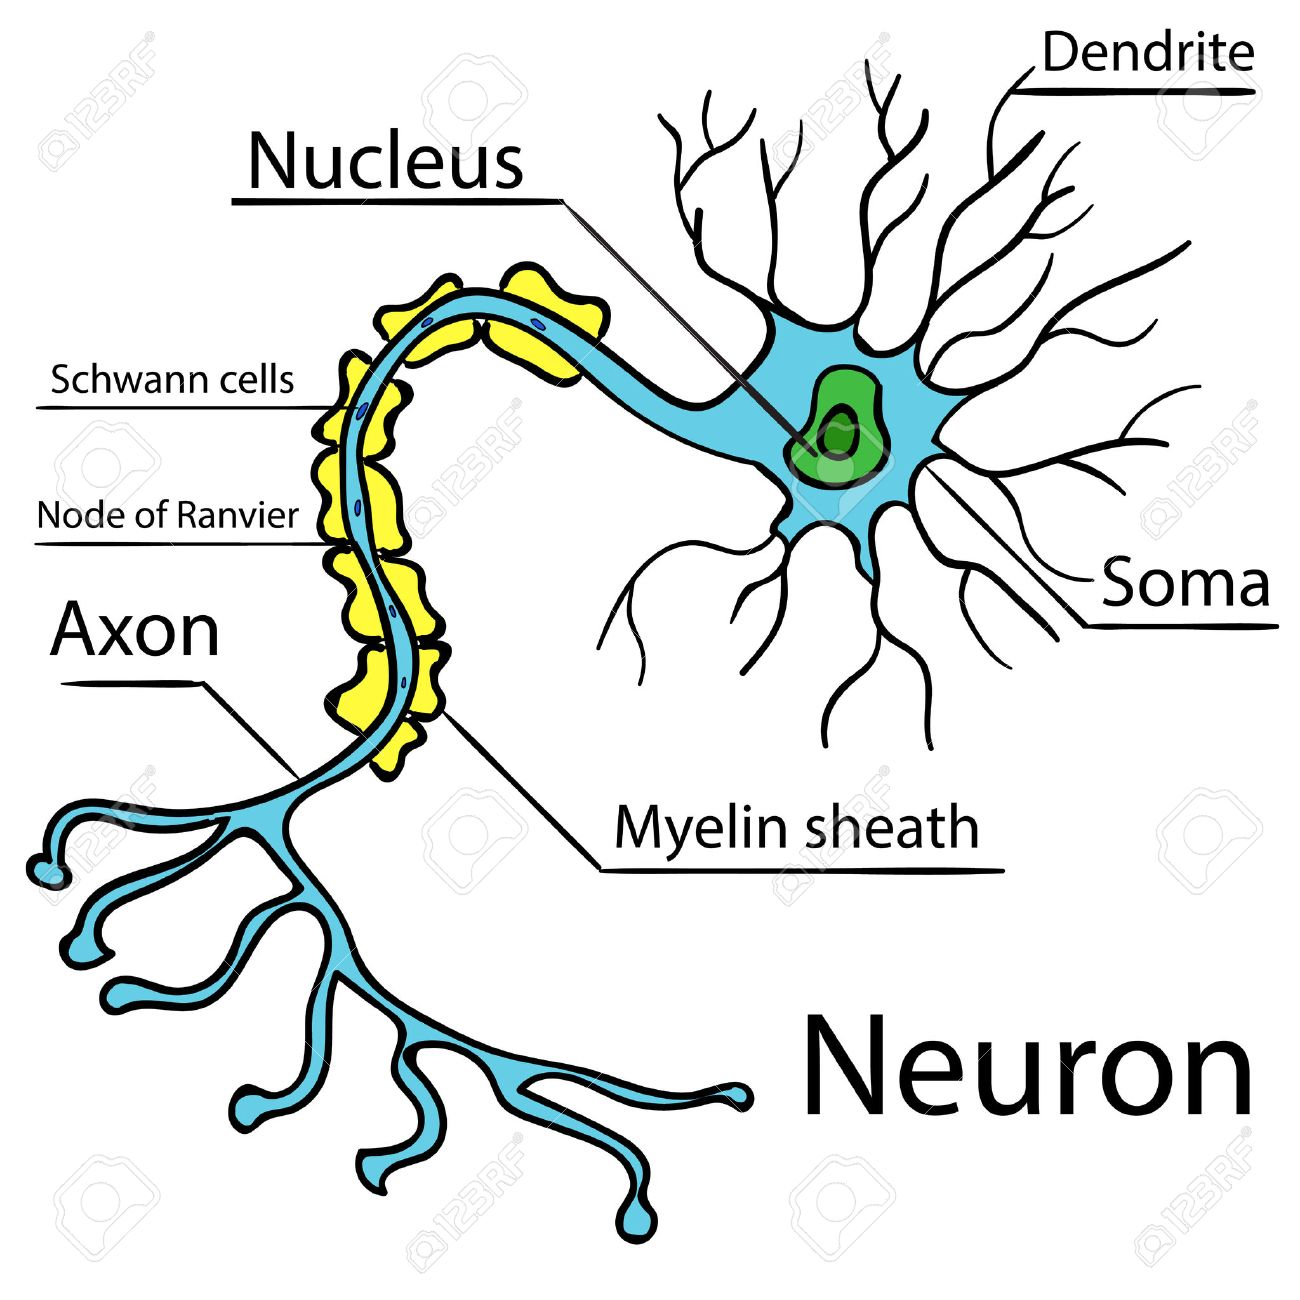 axon images & stock pictures royalty free axon photos and stock  : axon diagram - findchart.co